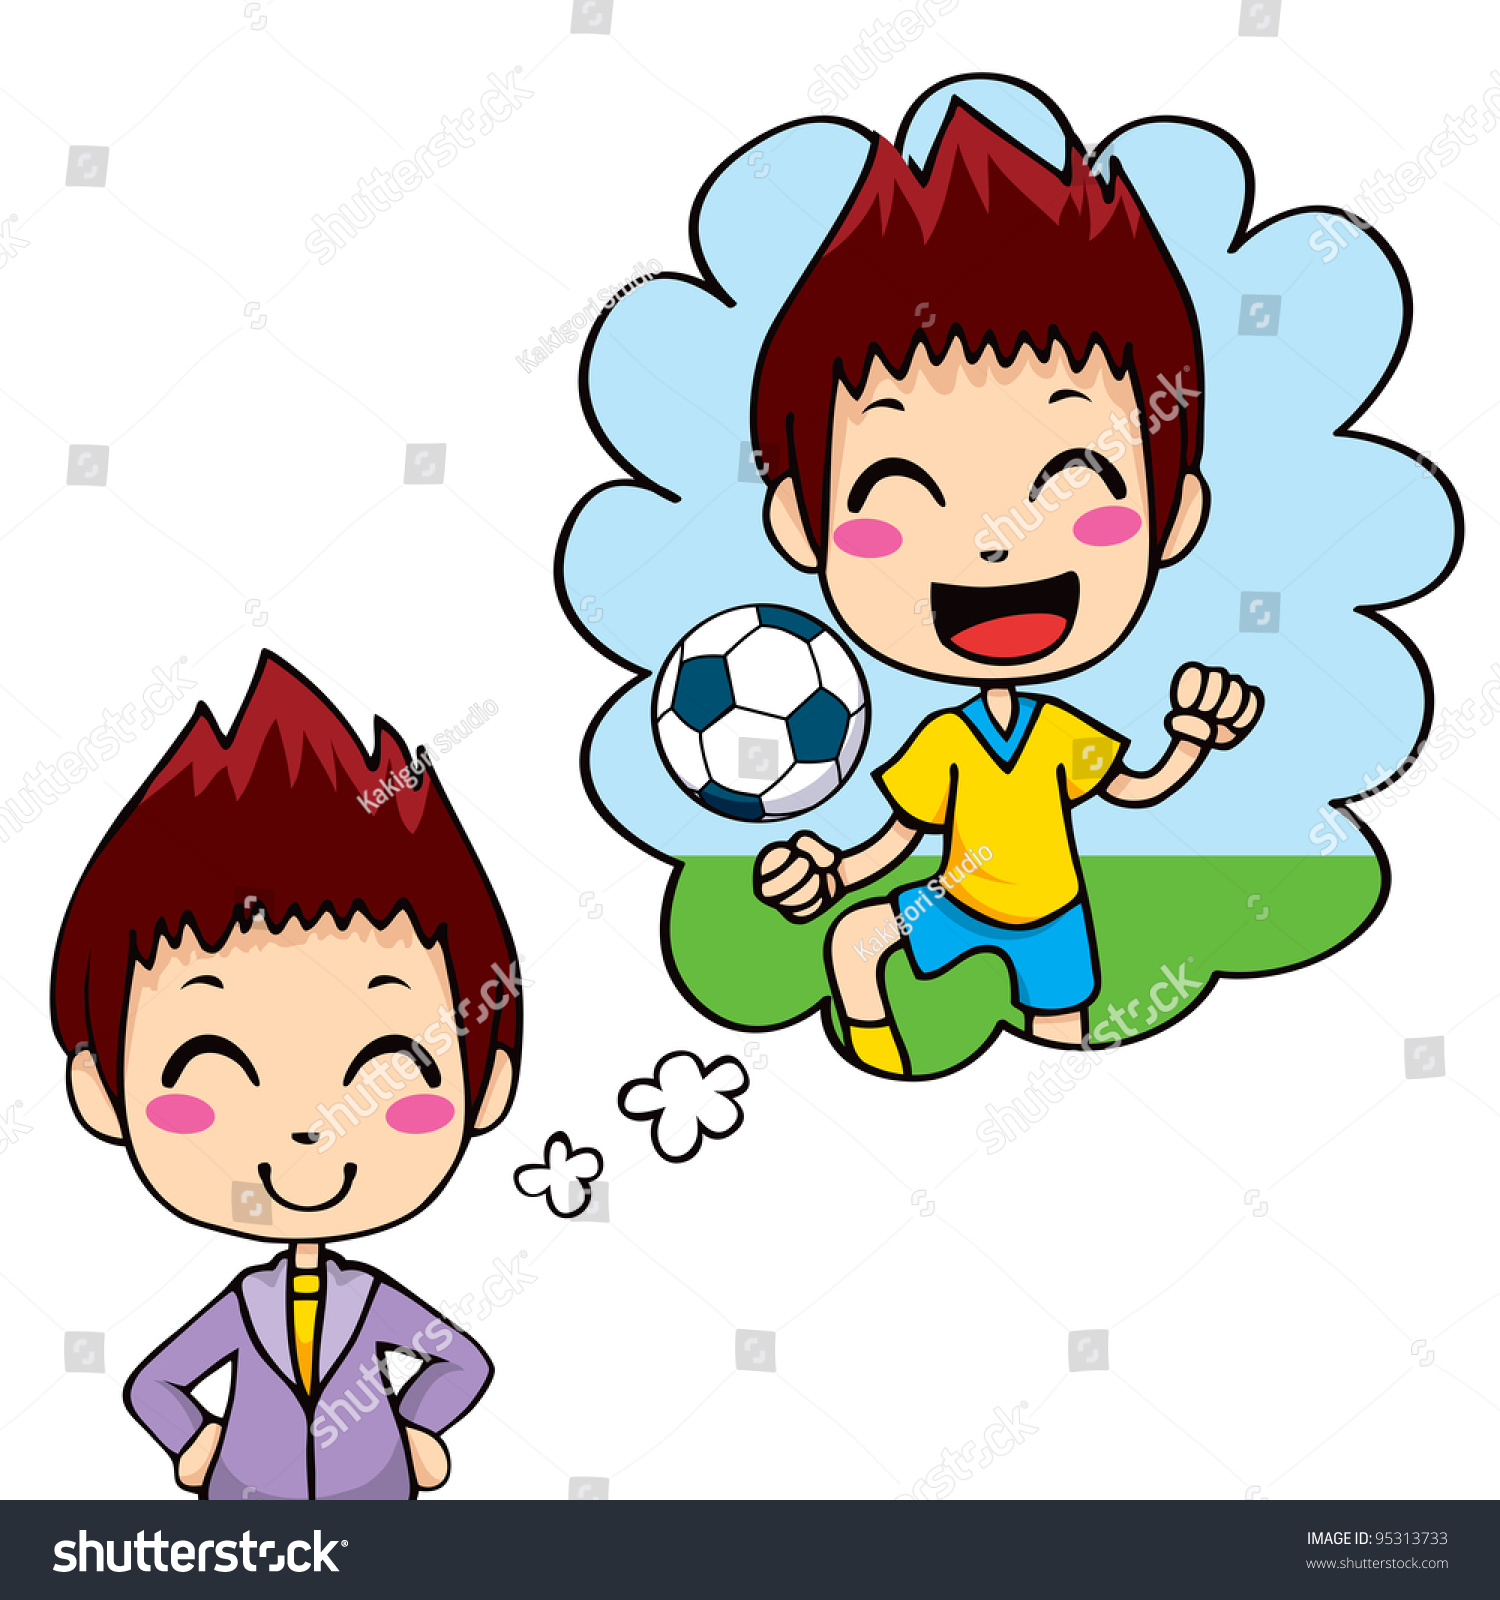 cute little boy dreaming being professional stock vector  cute little boy dreaming being a professional soccer team player